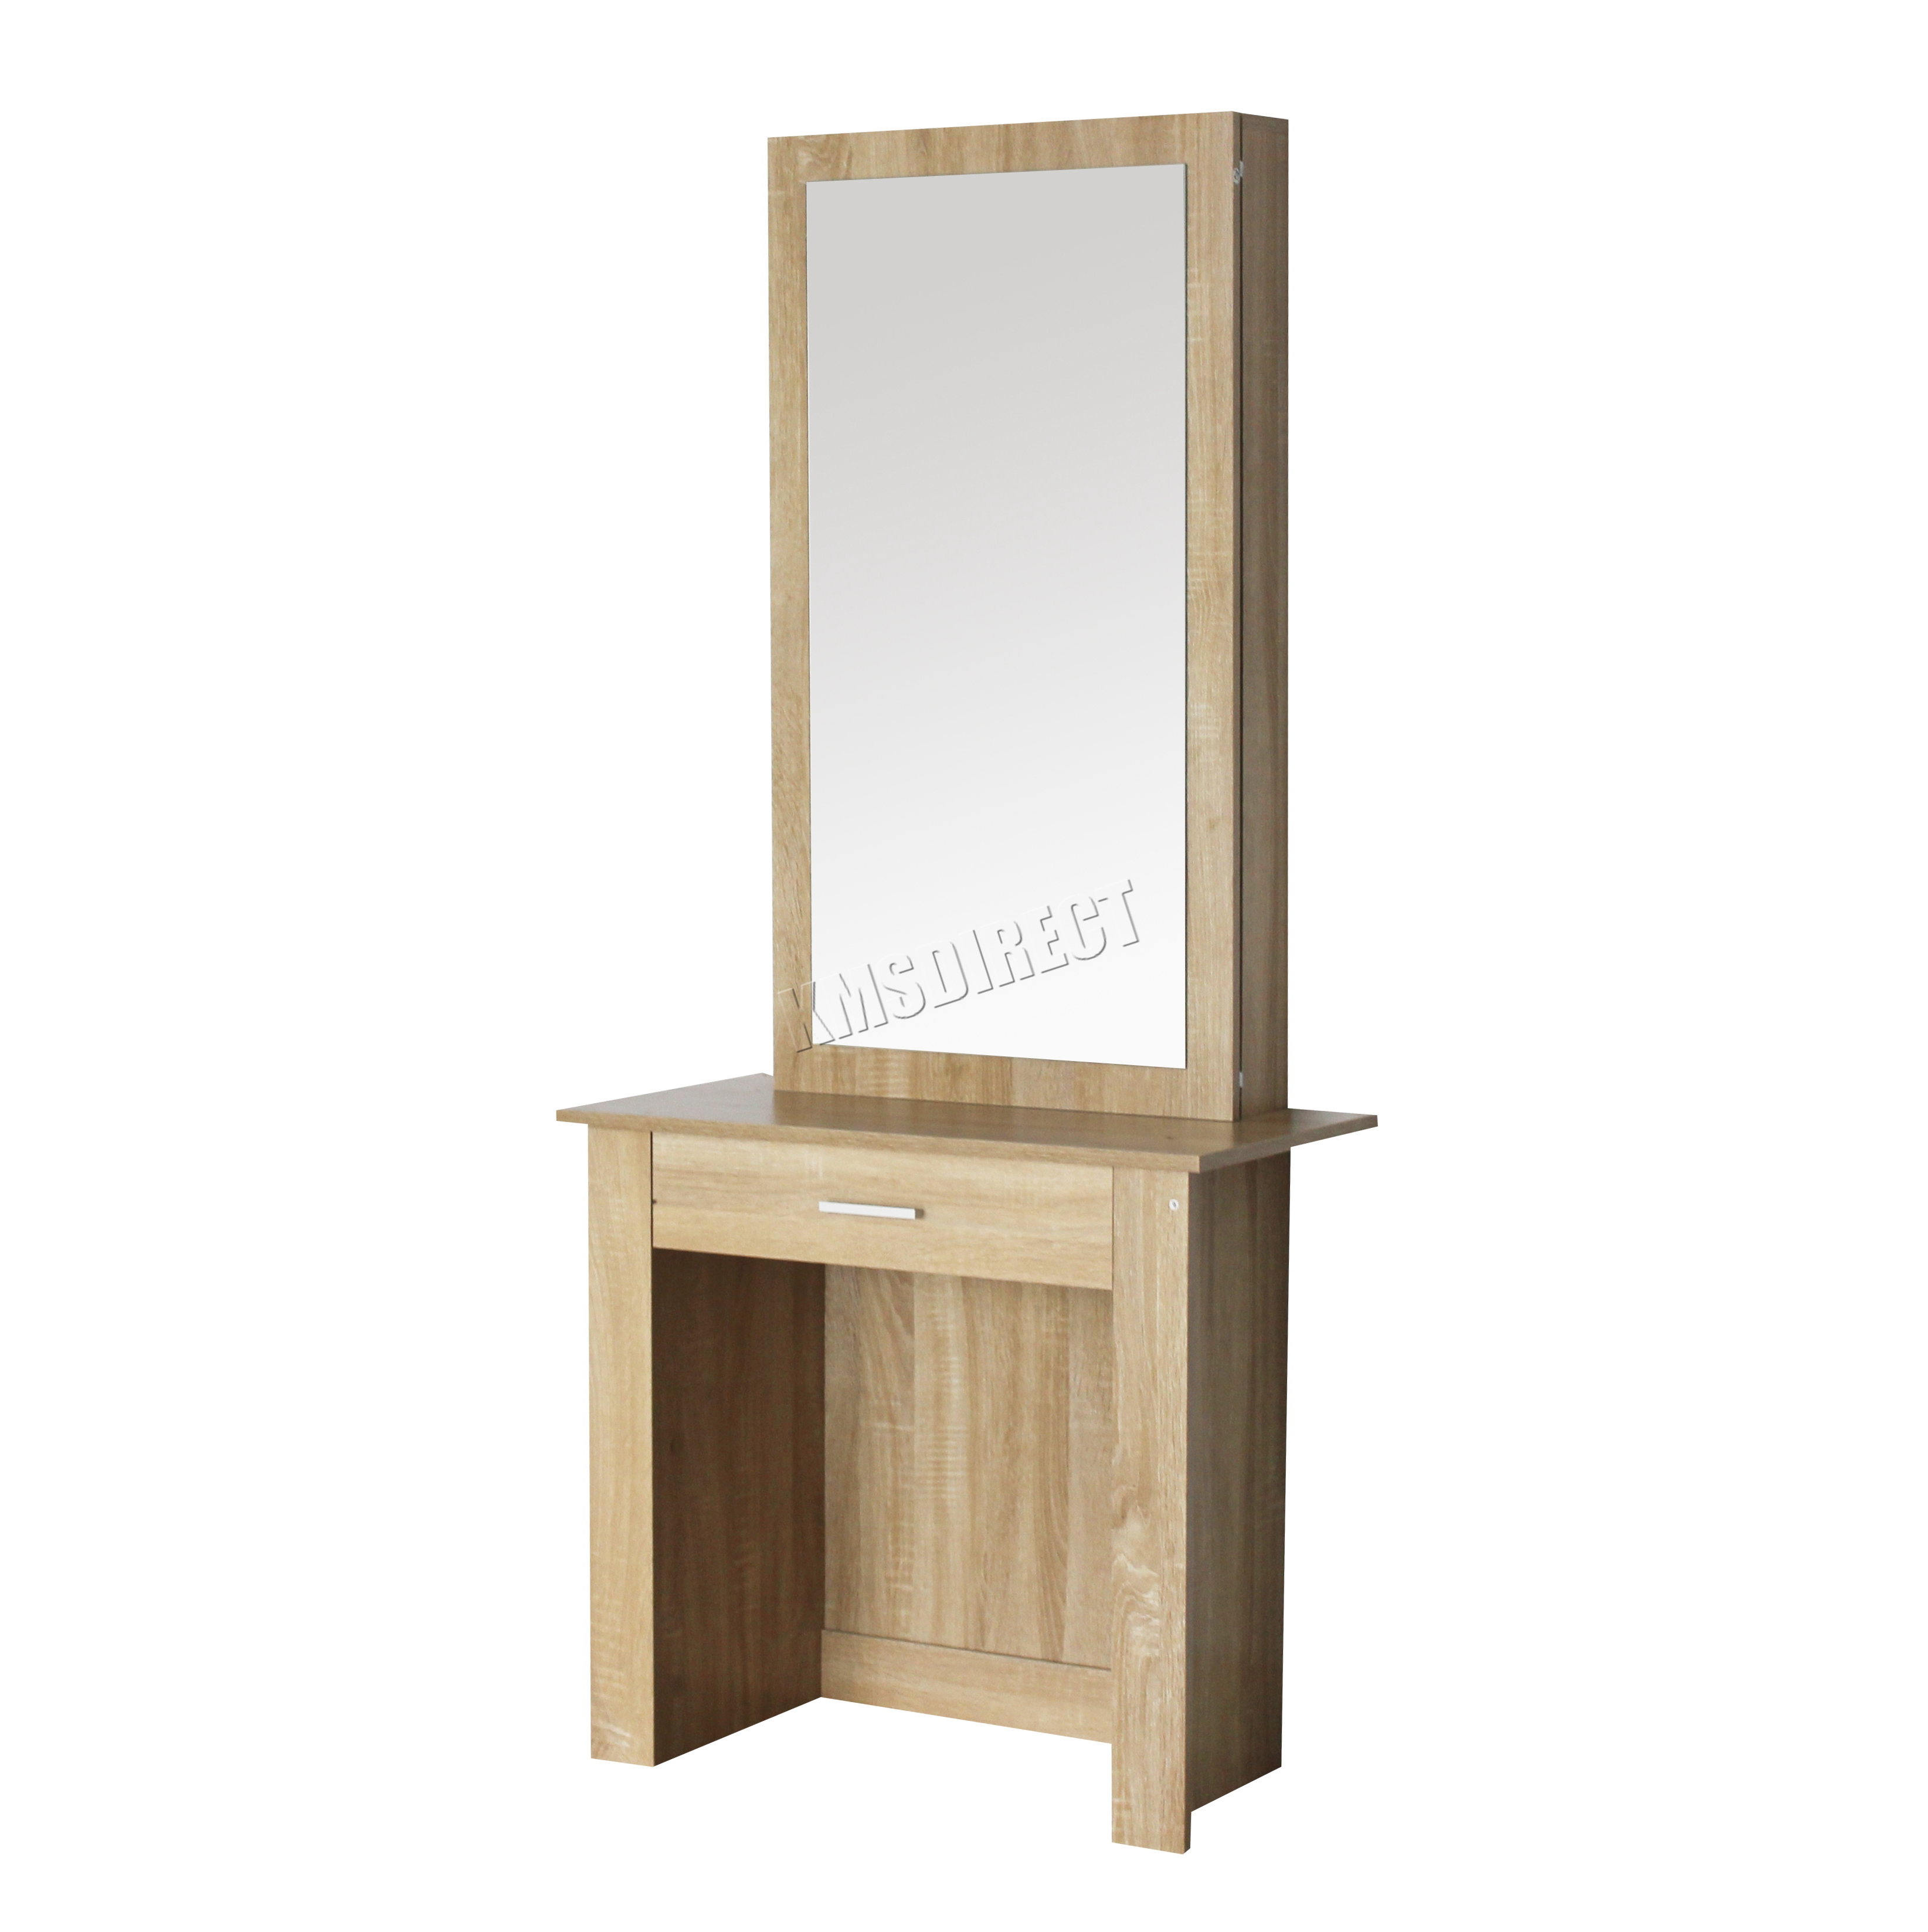 Foxhunter wooden makeup jewelry dressing table with